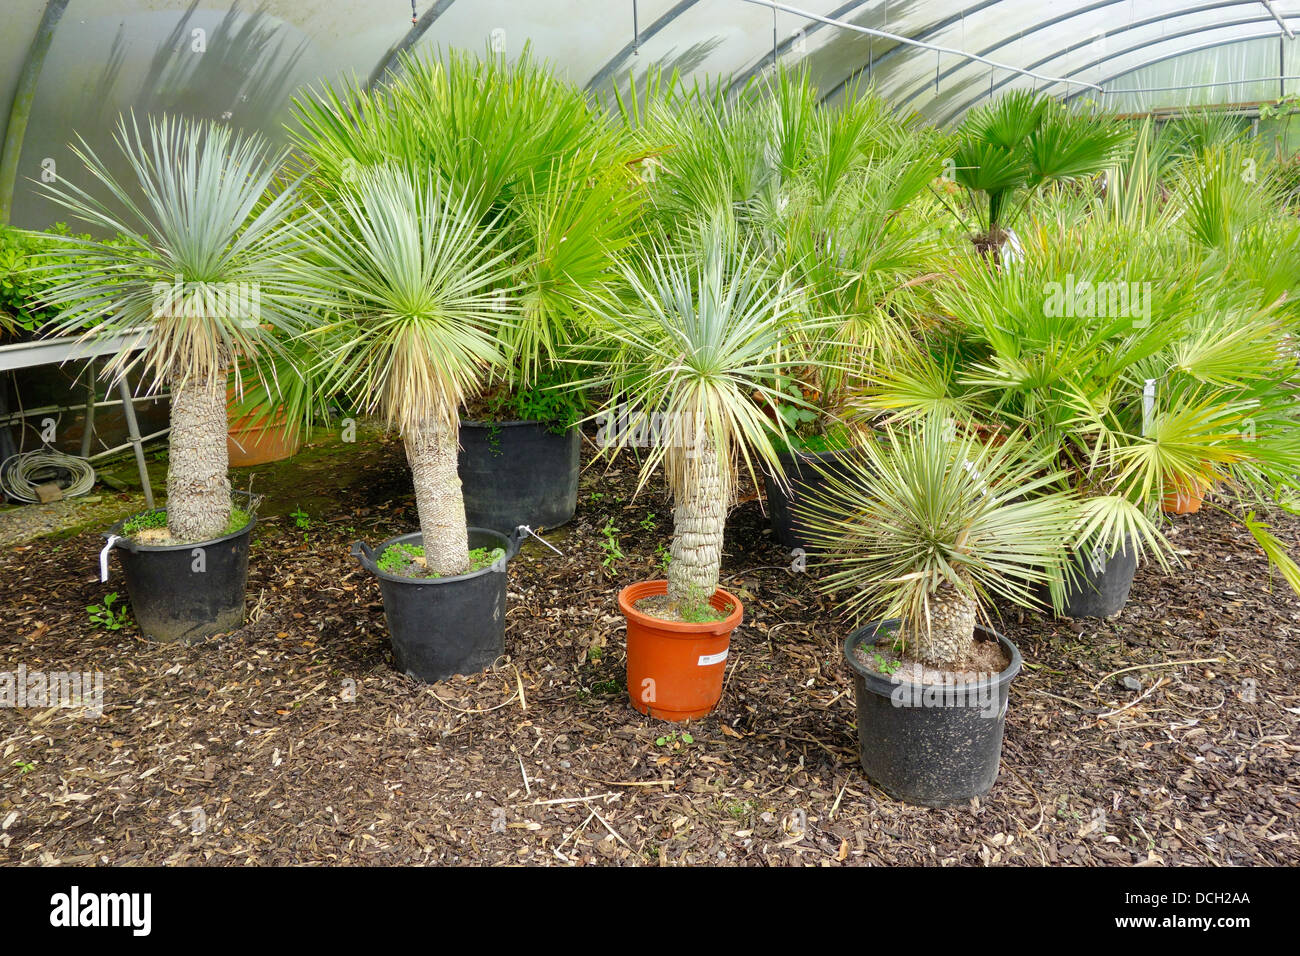 Are yucca trees native to the denver area aurora house for Small trees suitable for small gardens